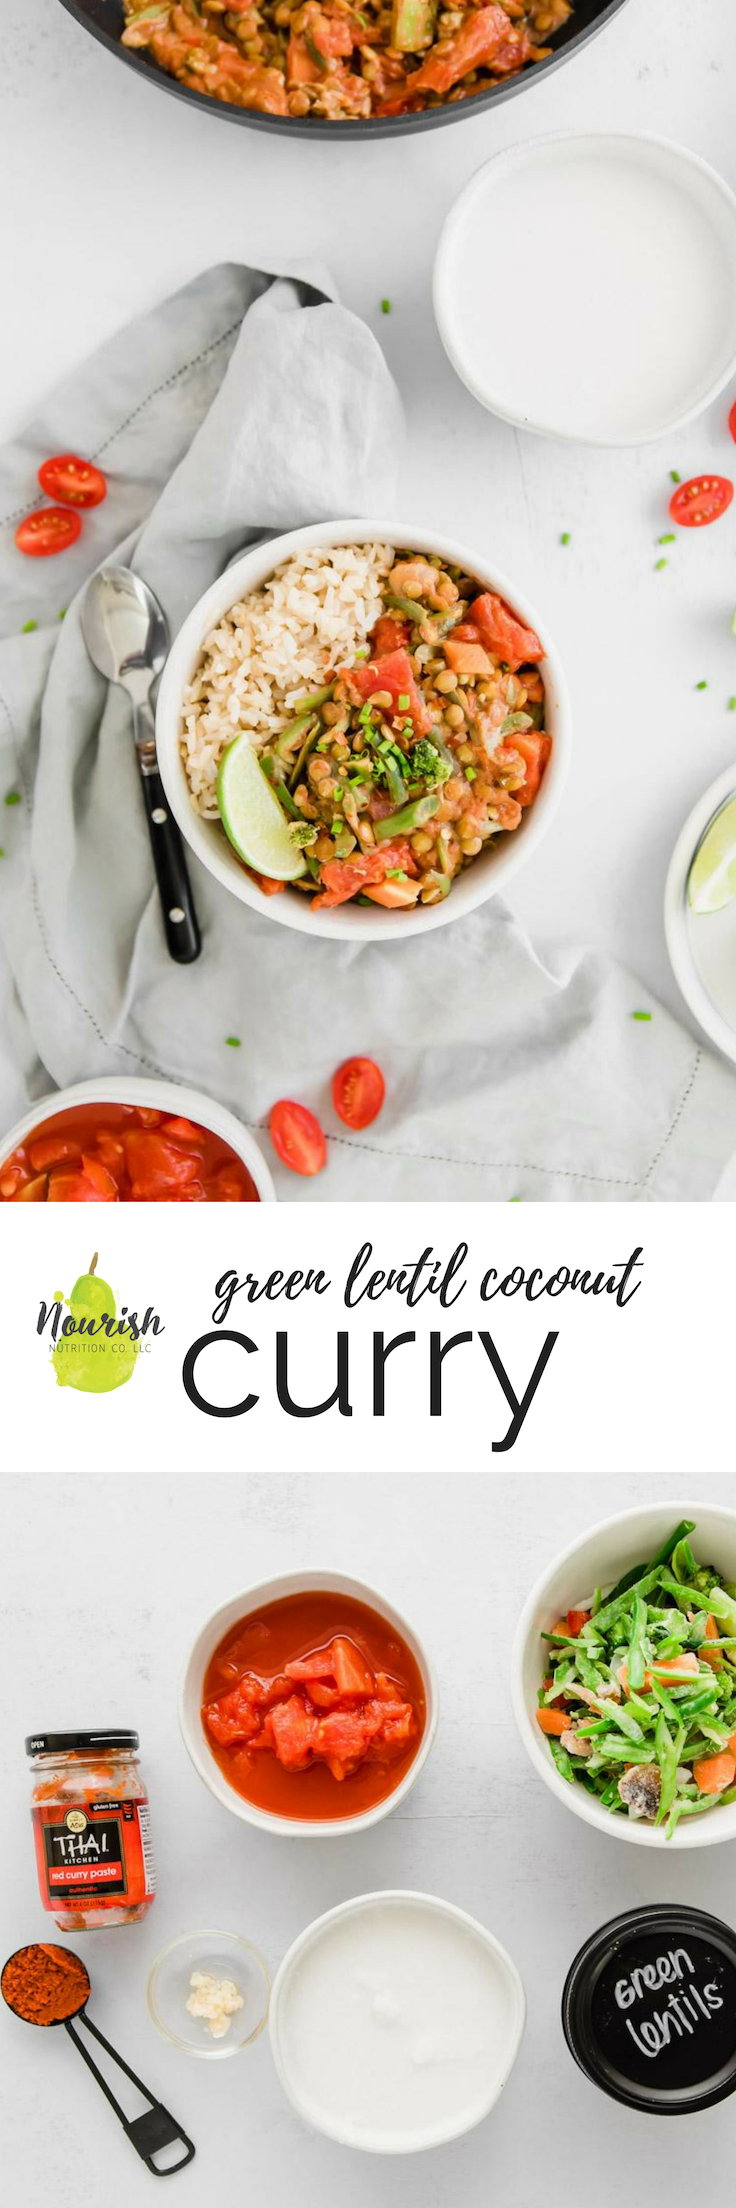 Green Lentil Coconut Curry